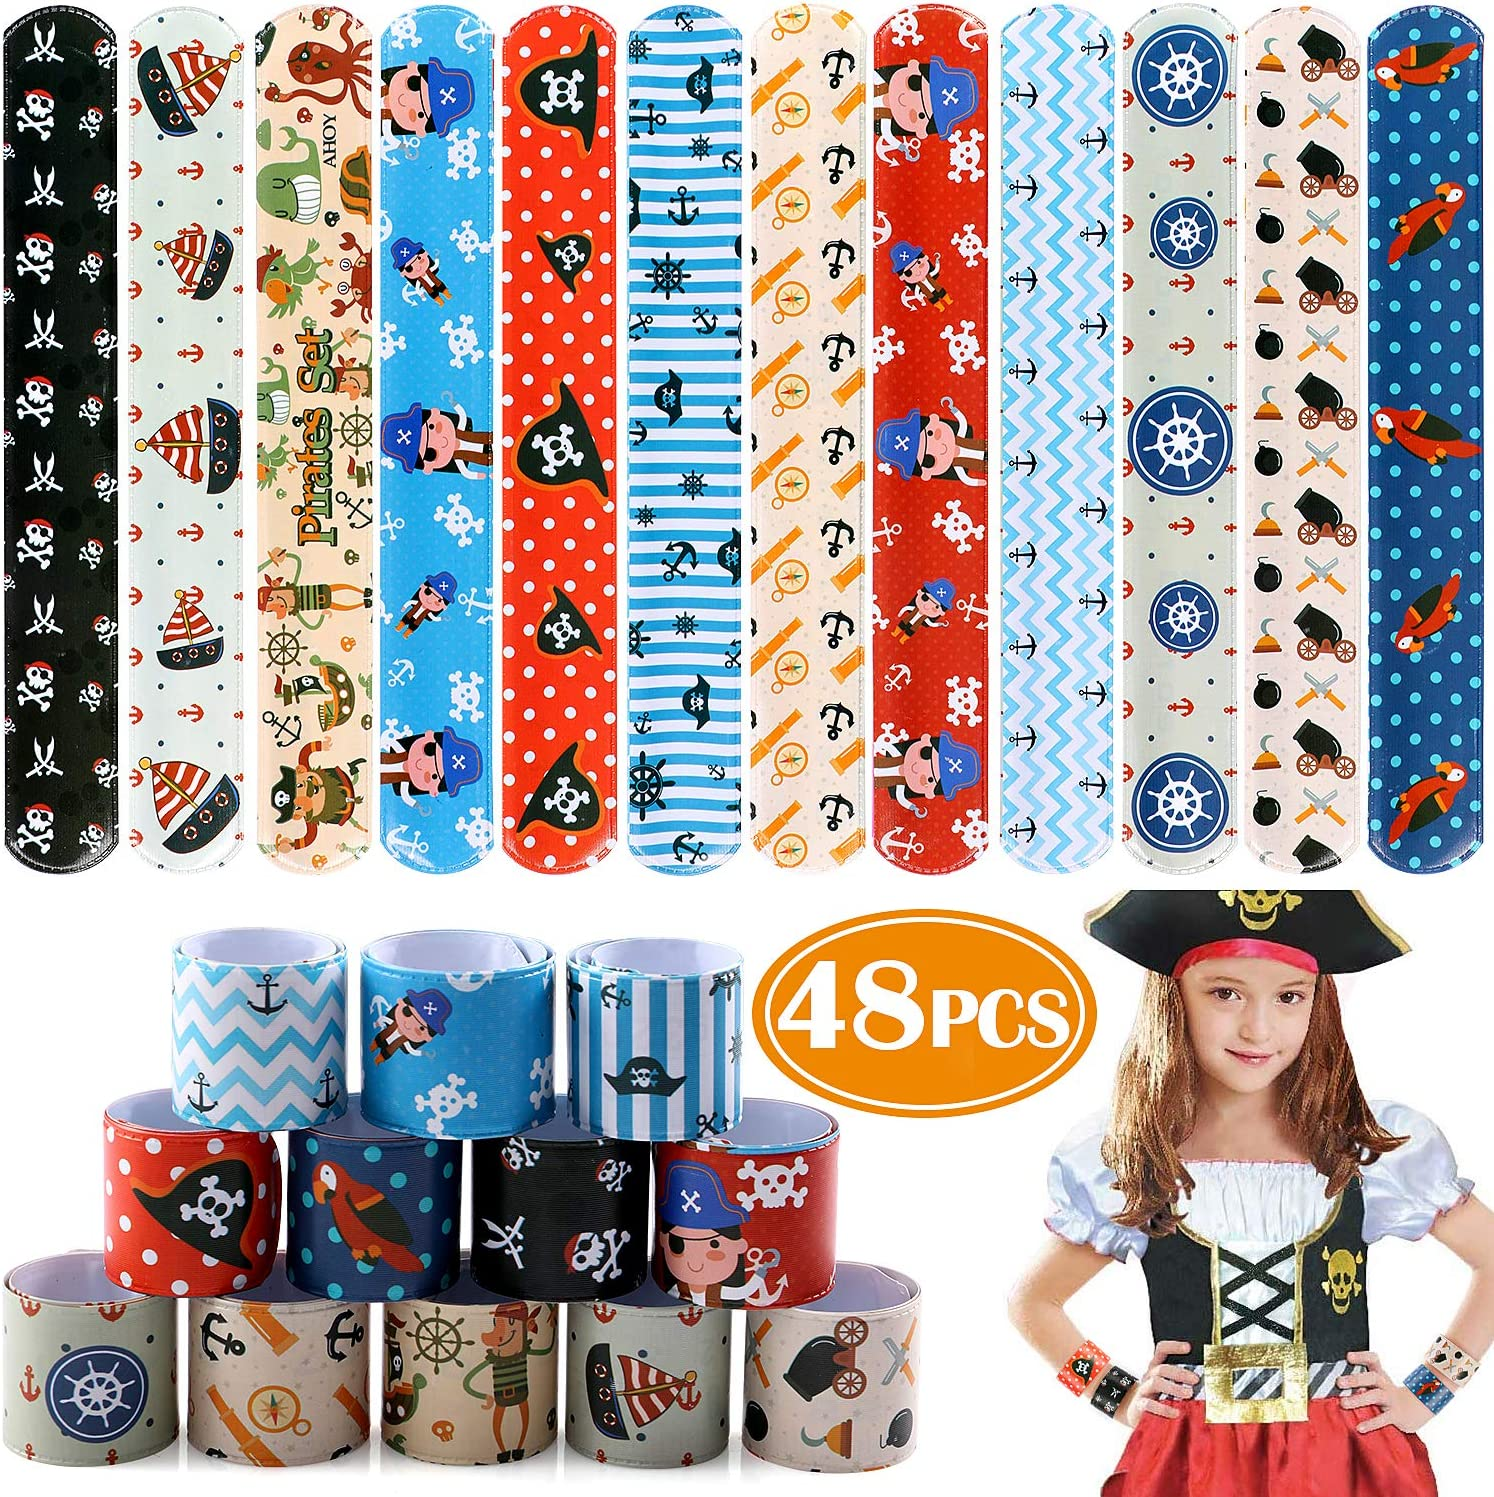 12 PIRATE PAPER HATS  Kids//adult  Party Bags pinata Fillers Toys costumes gifts